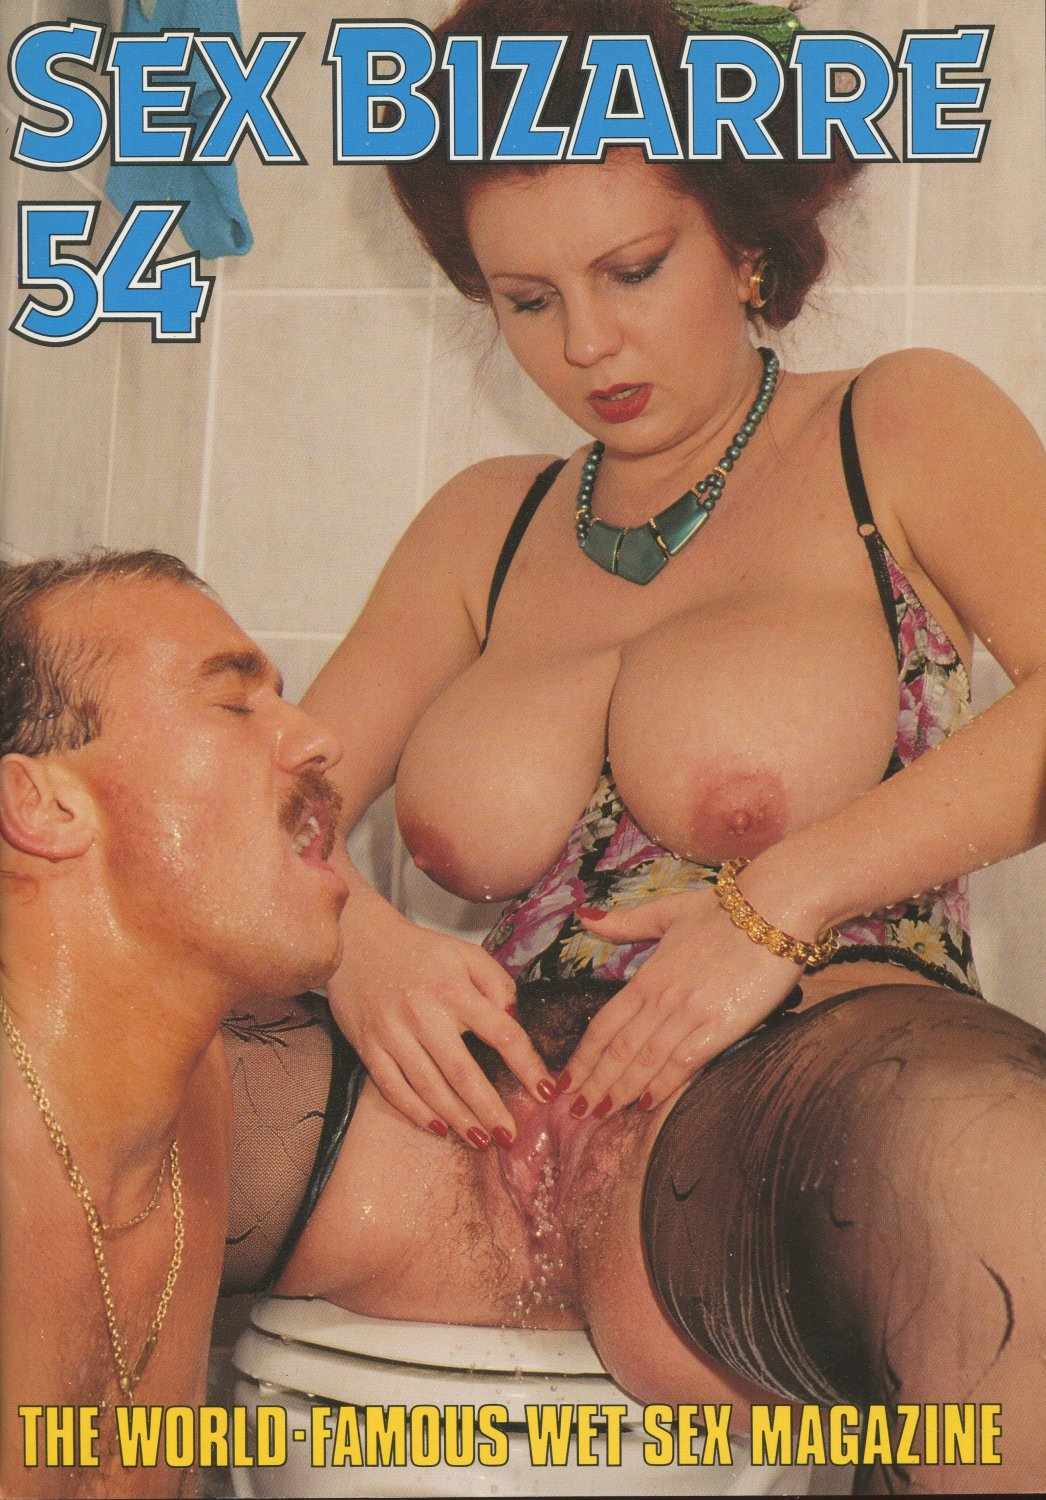 COLOR CLIMAX - SEX BIZARRE 54 - 1992